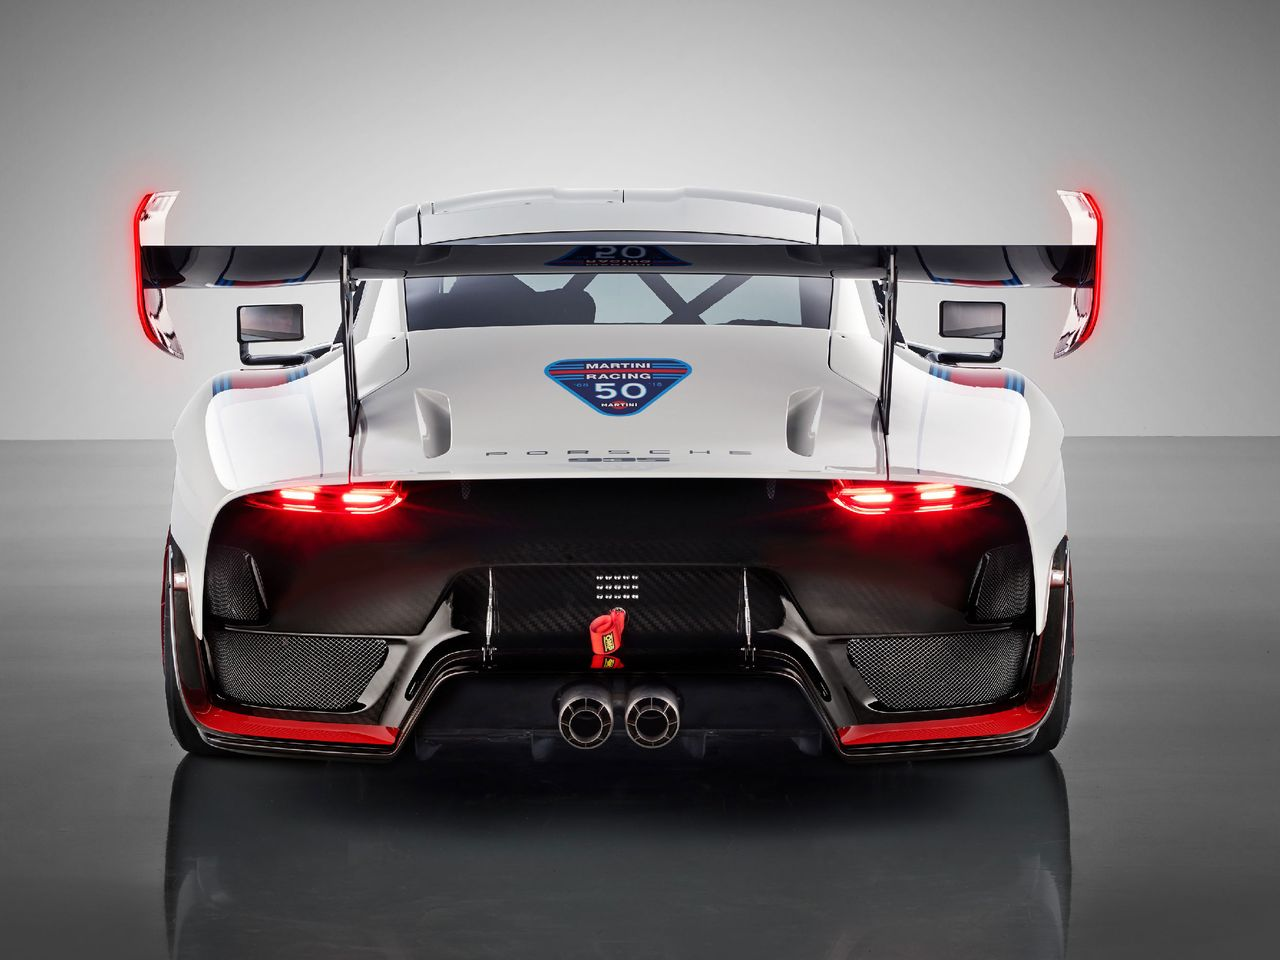 Drawing parallels: LED taillights in the end panels of the rear wing recall the LMP1 racer, the 919 Hybrid; exposed titanium tailpipes were inspired by the 1968 Porsche 908; and deep in the rear the basis lies hidden: 911 GT2 RS.